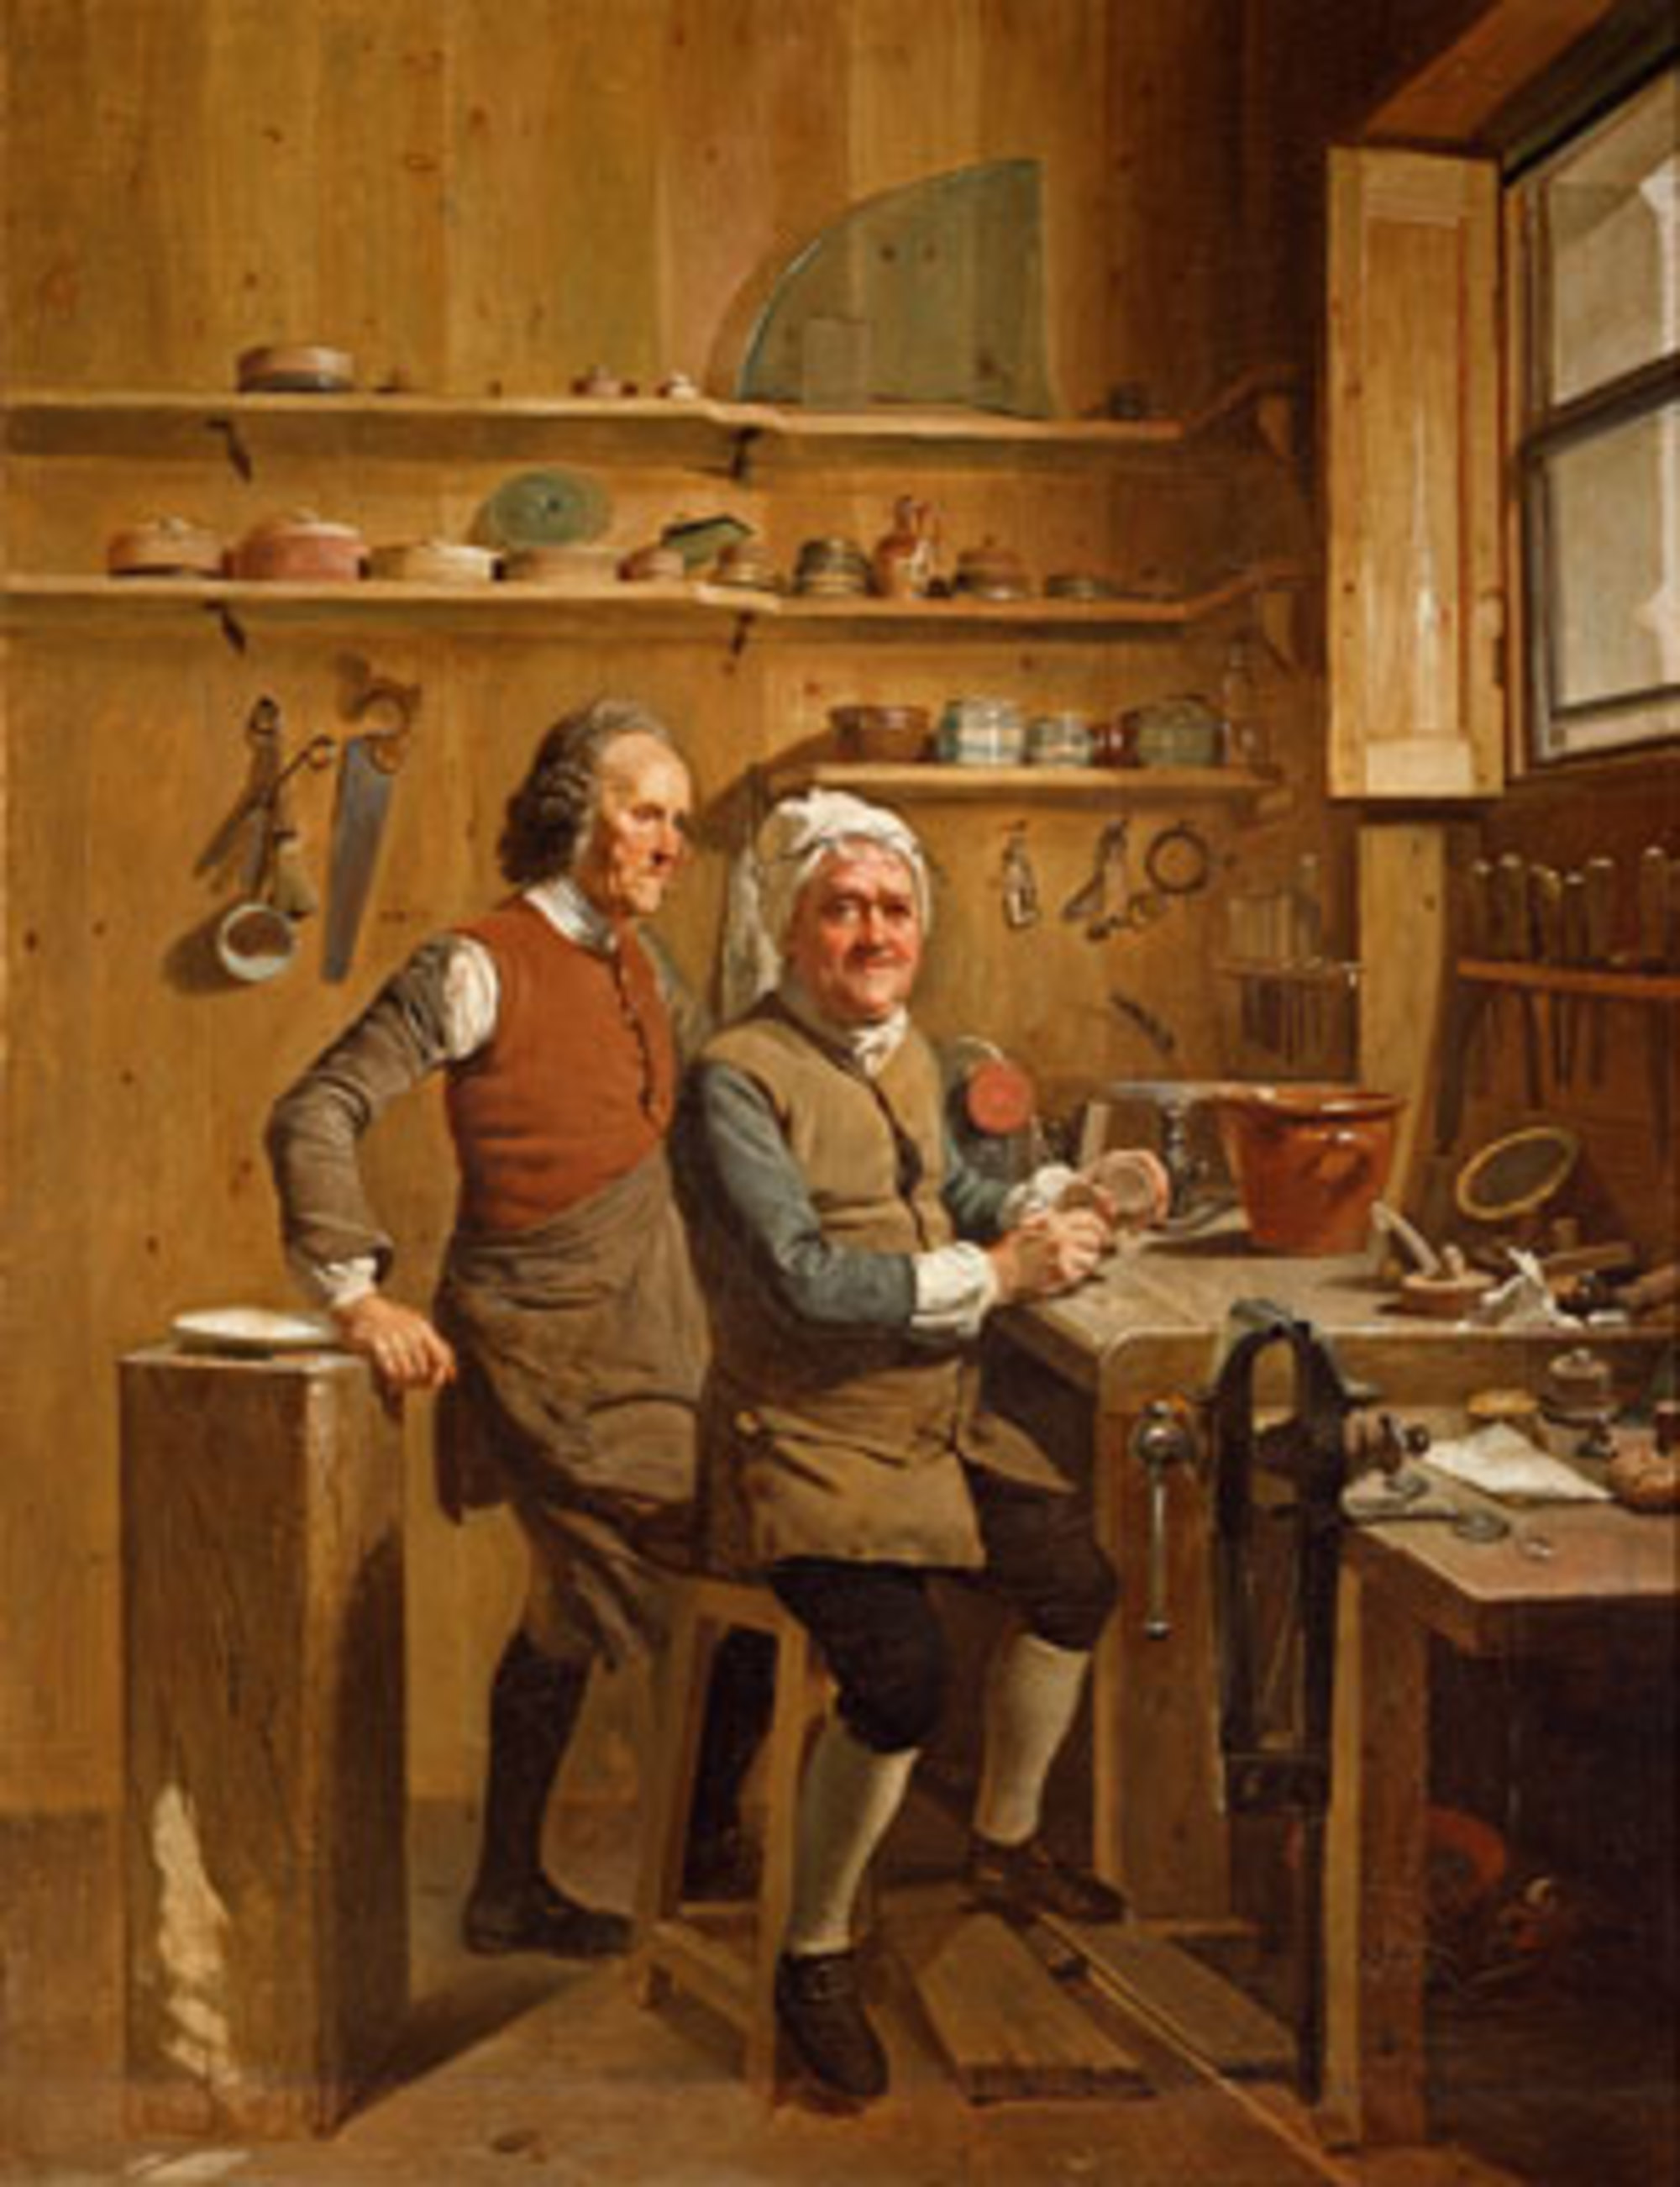 John-Cuff-and-his-assistant-ca.-1772-Royal-Collection-by-Johan-Zoffany.jpg